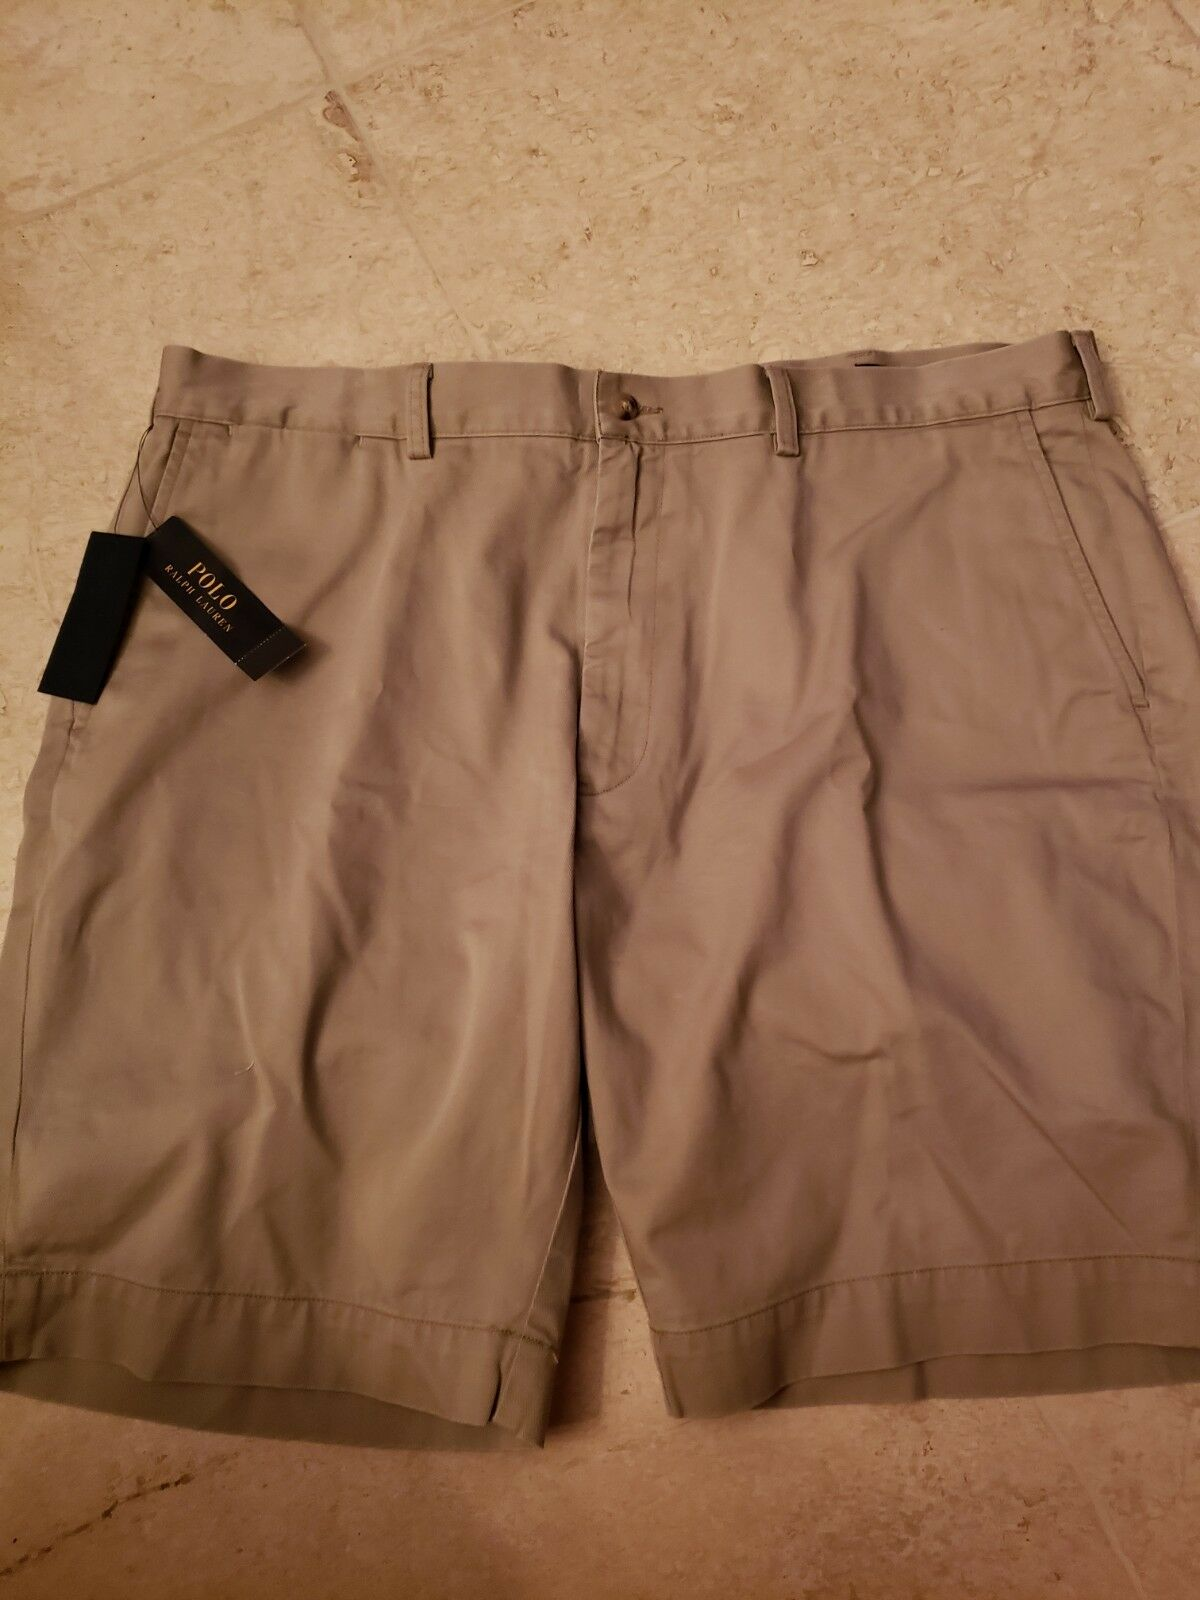 a254574954 POLO LAUREN MEN'S KHAKI HUDSON TAN FLAT FRONT SHORTS 9 INSEAM 40 NWT RALPH  ndnhjo19285-Shorts